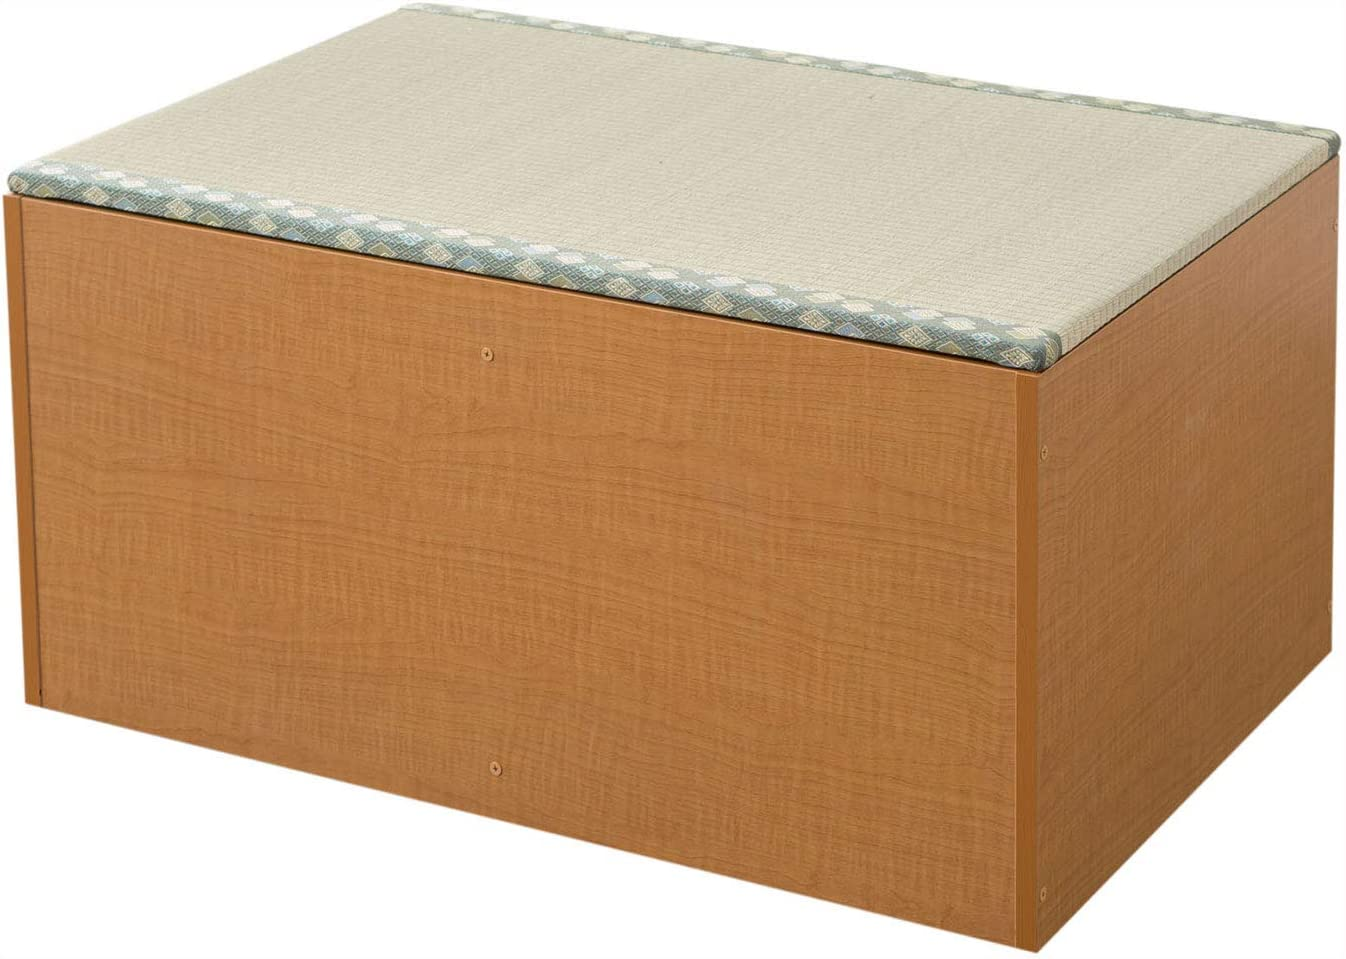 EMOOR Igusa Tatami Unit Storage Ottoman Bench Chest Type-A 35x24x18in (90cm), Natural